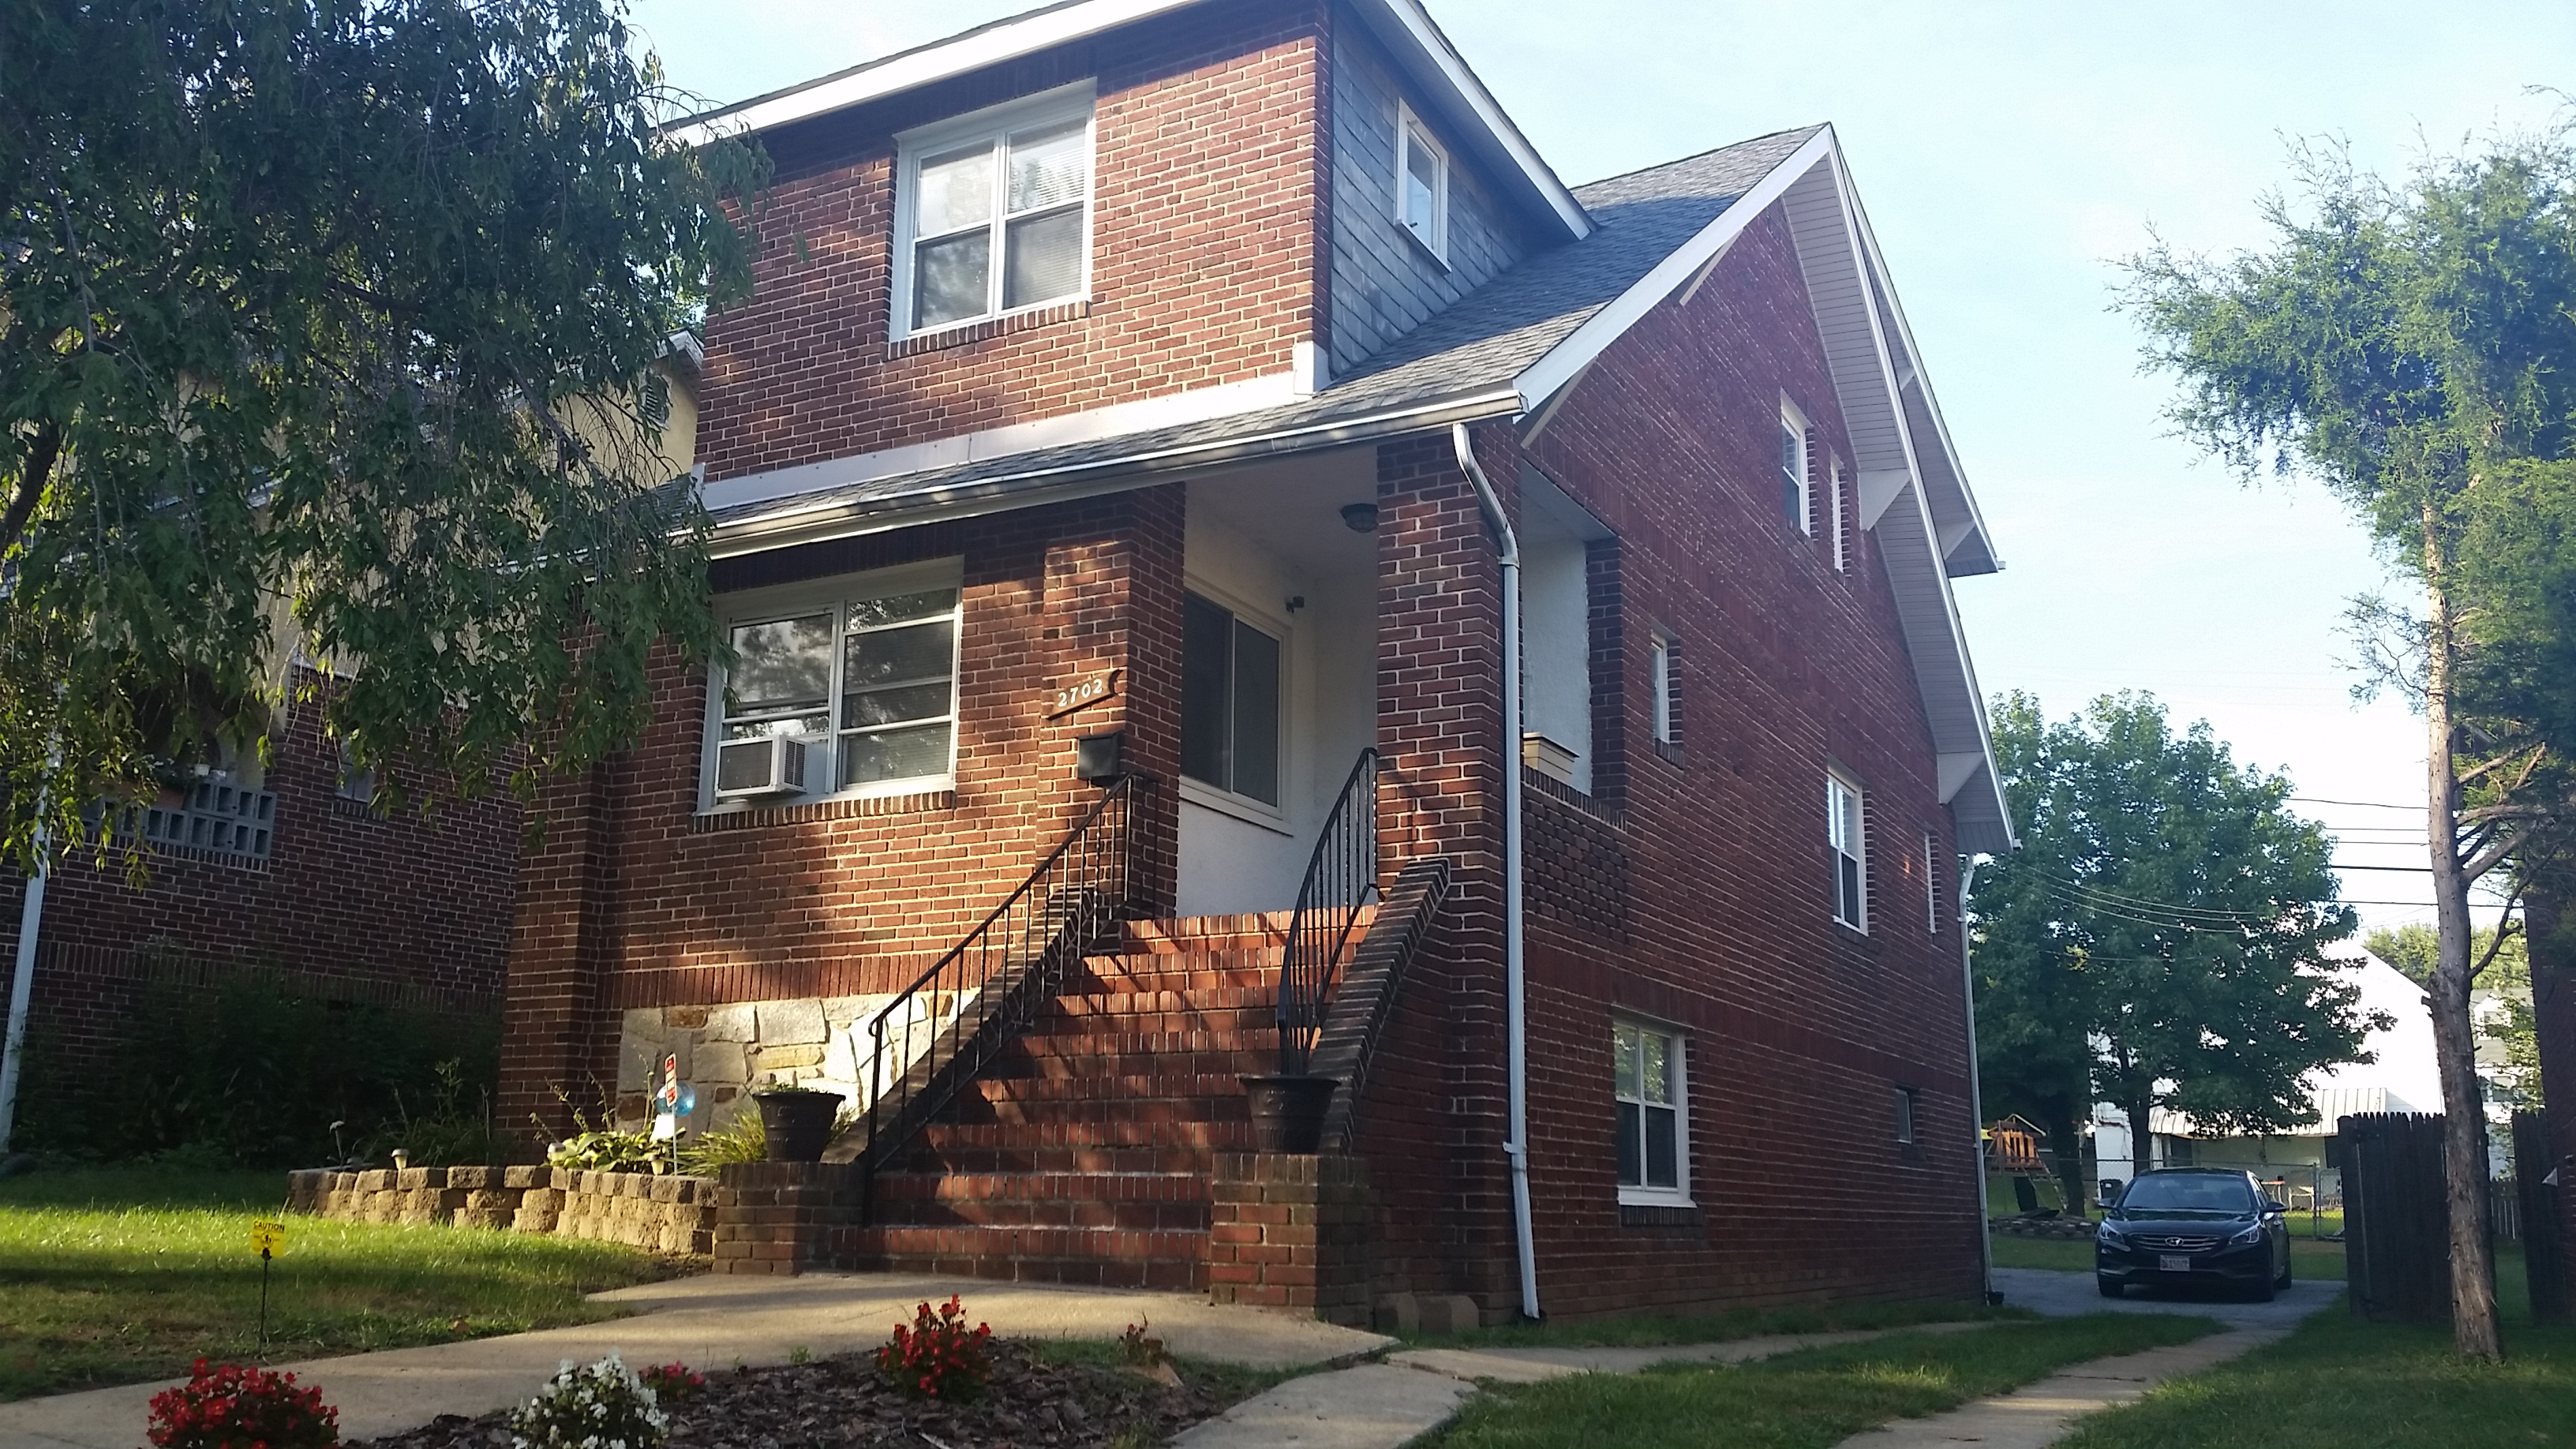 House for Rent in Parkville